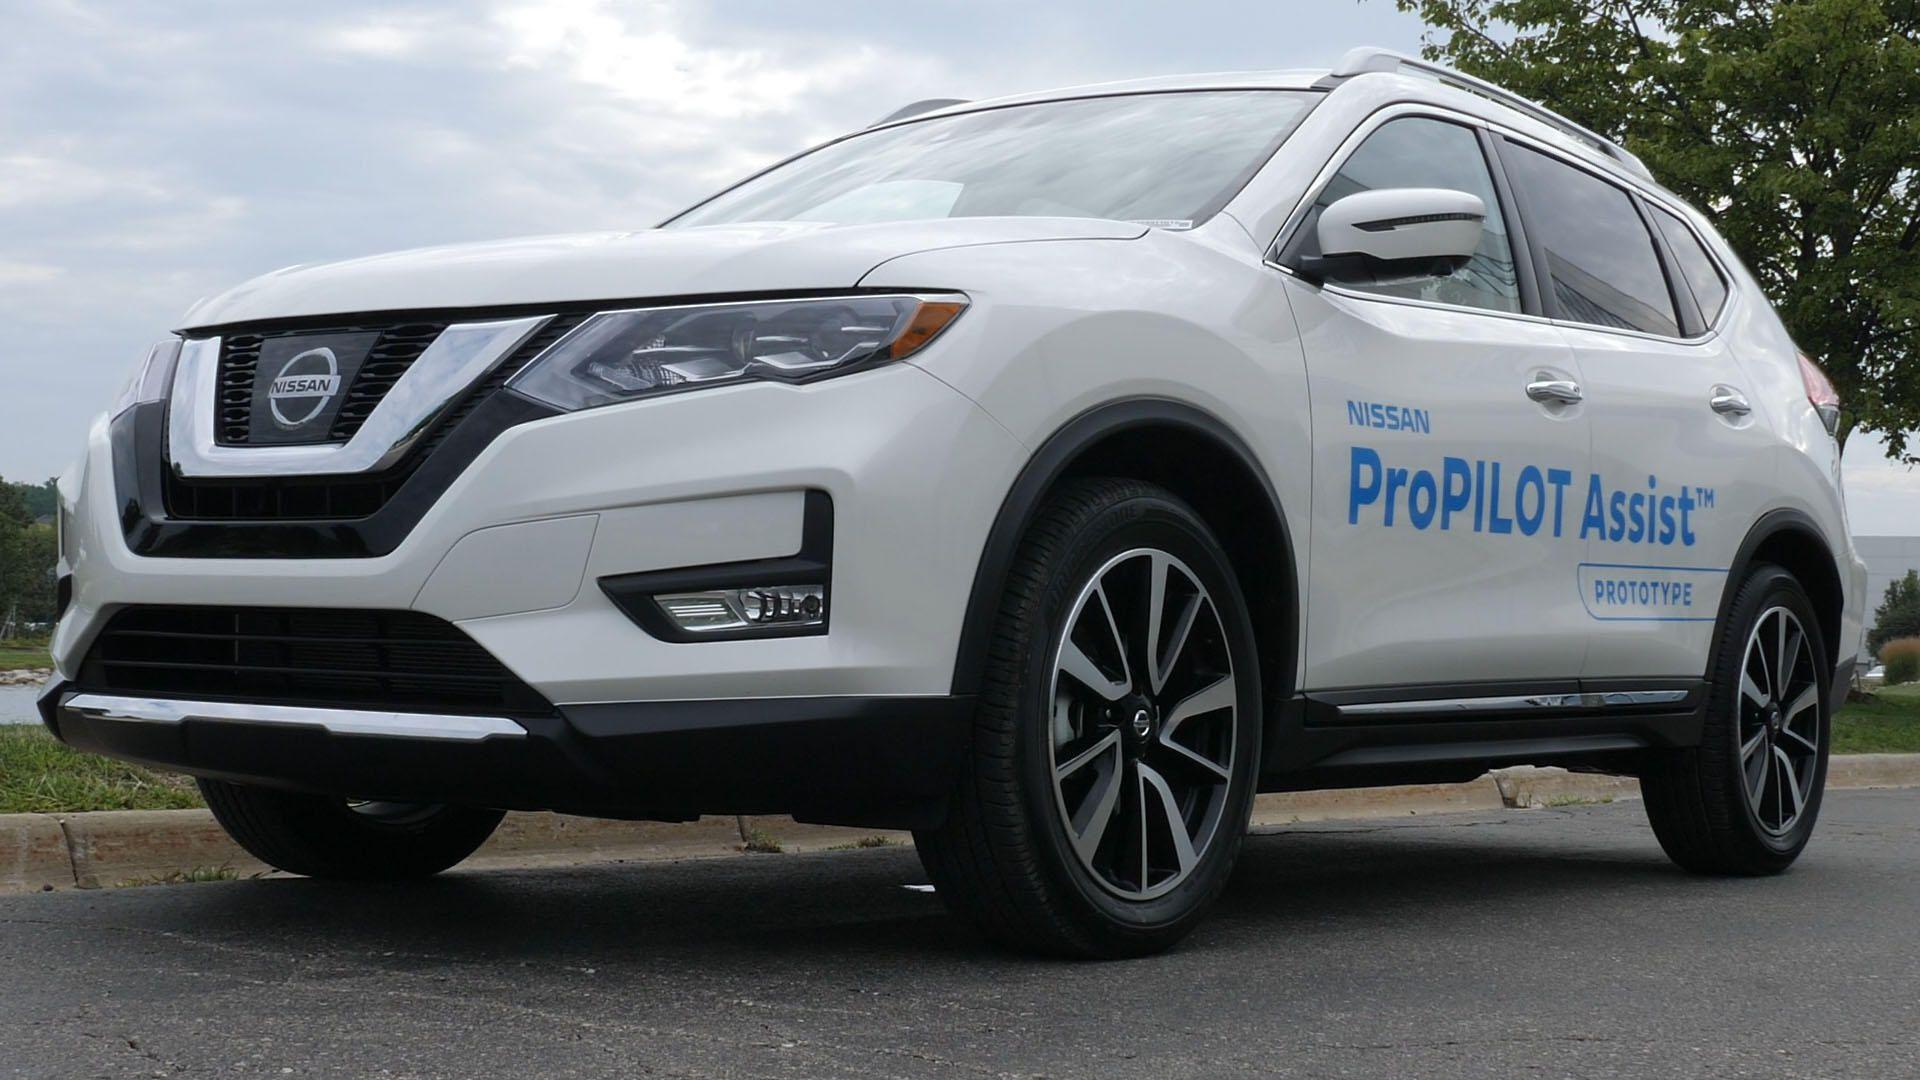 Nissan's ProPilot Assist could be a commuter's best friend new messages